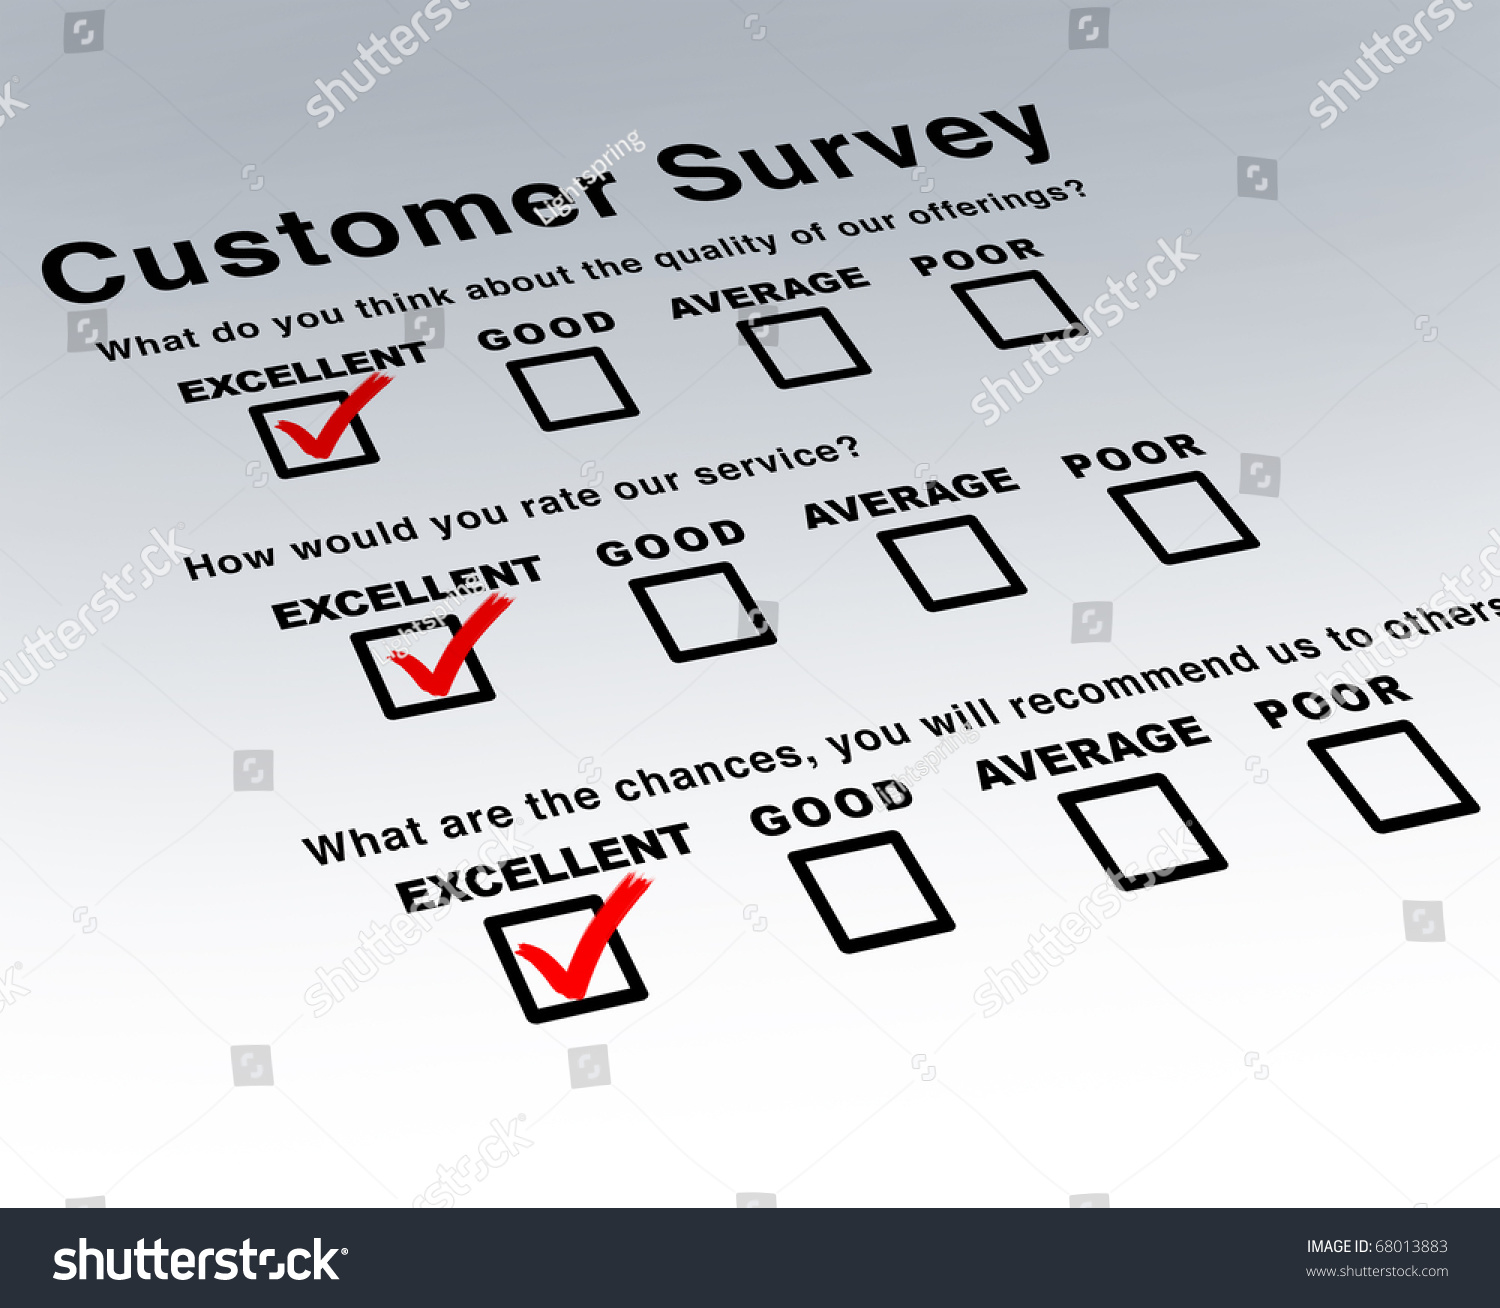 quality customer satisfaction surveys Measuring customer service is critical for customer-centric firms committed to improving the customer experience ways of measuring customer satisfaction include: survey customers feedback from customers in relation to quality, reliability and extent satisfaction should be matched.